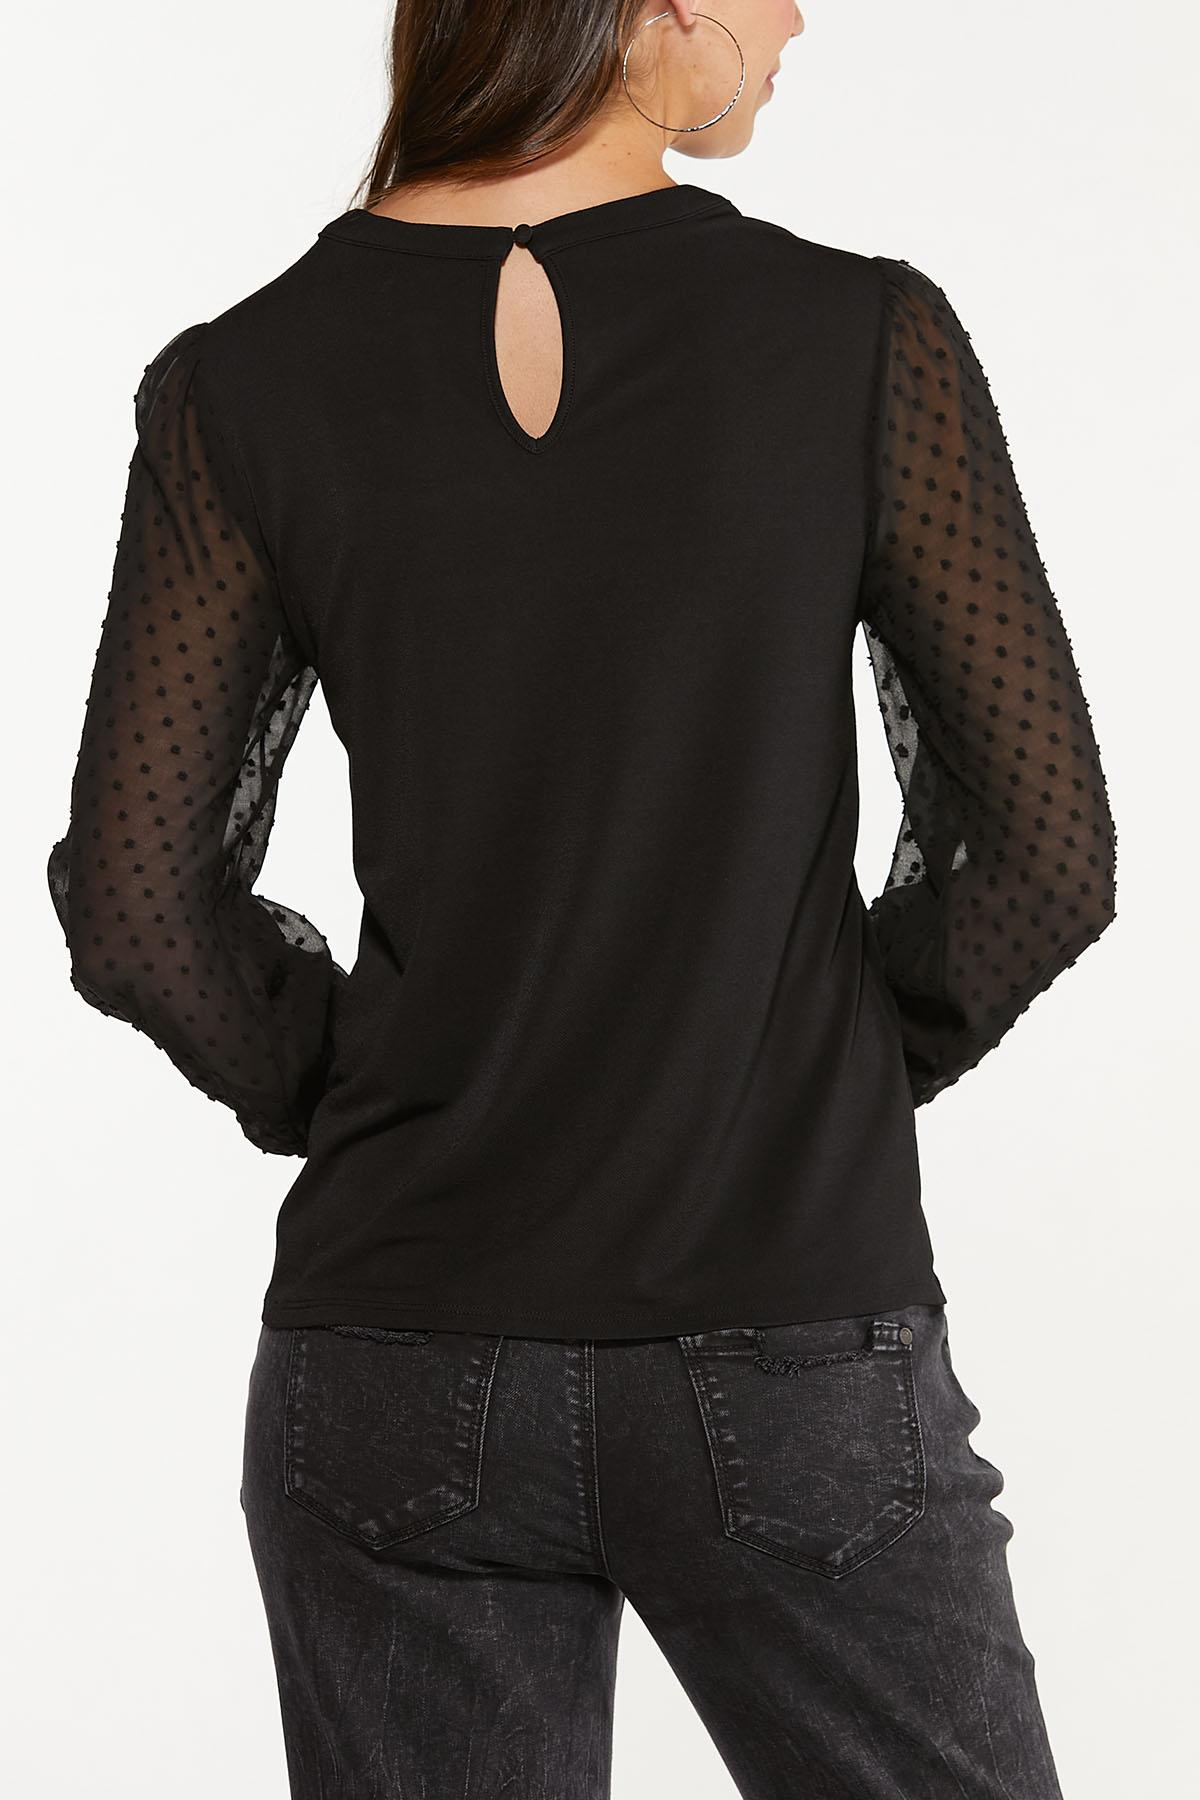 Plus Size Sheer Dotted Sleeve Top (Item #44675997)